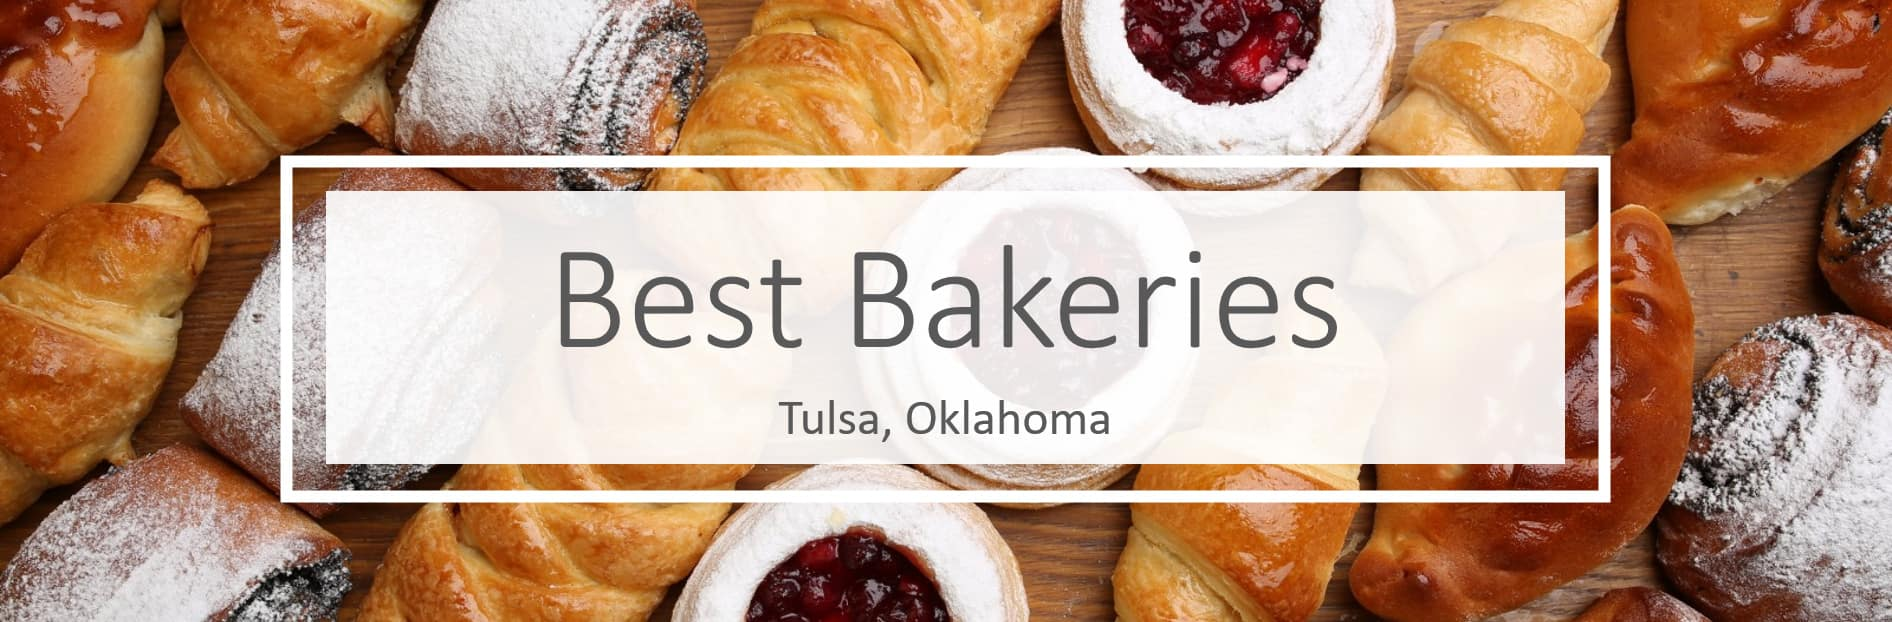 Bakeries in Tulsa, Oklahoma